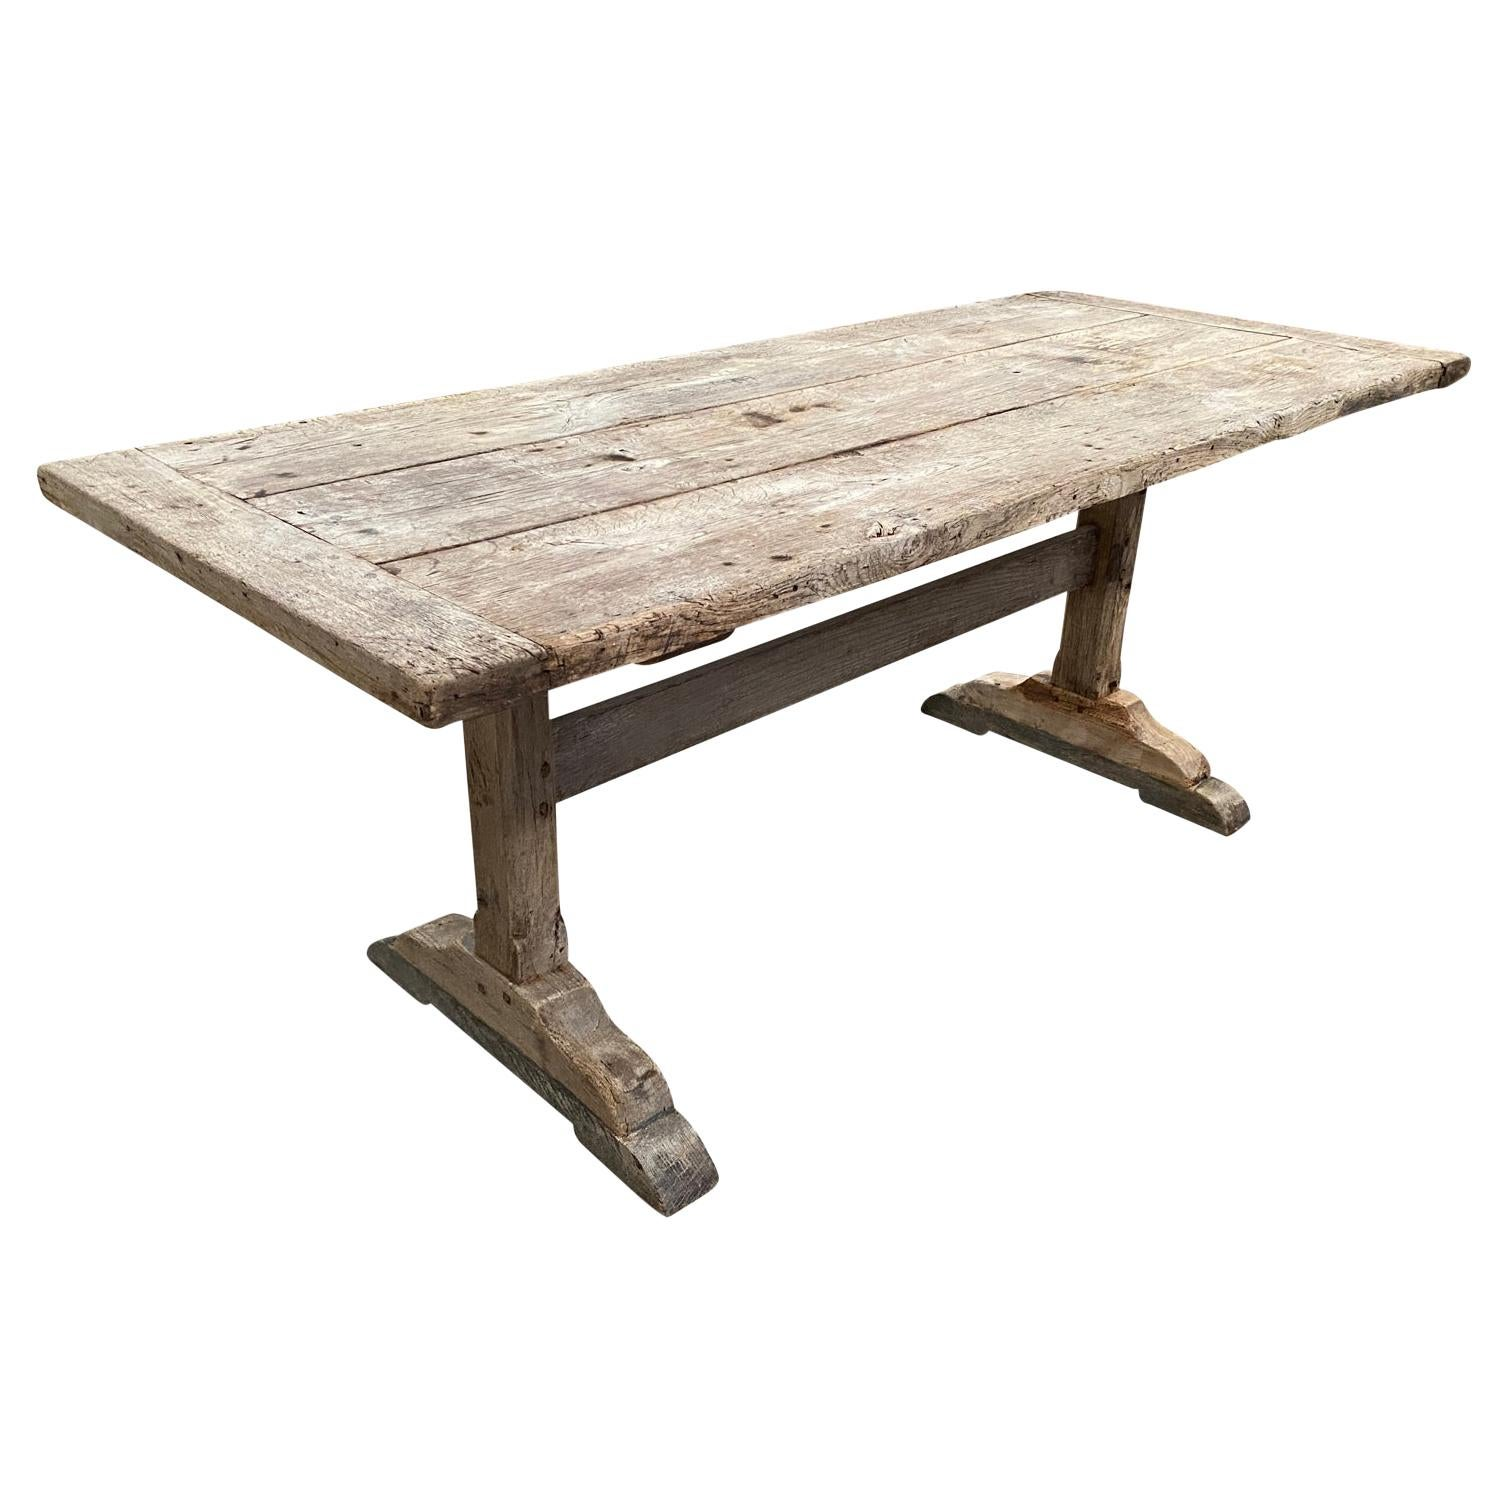 French Mid-19th Century Farm Table